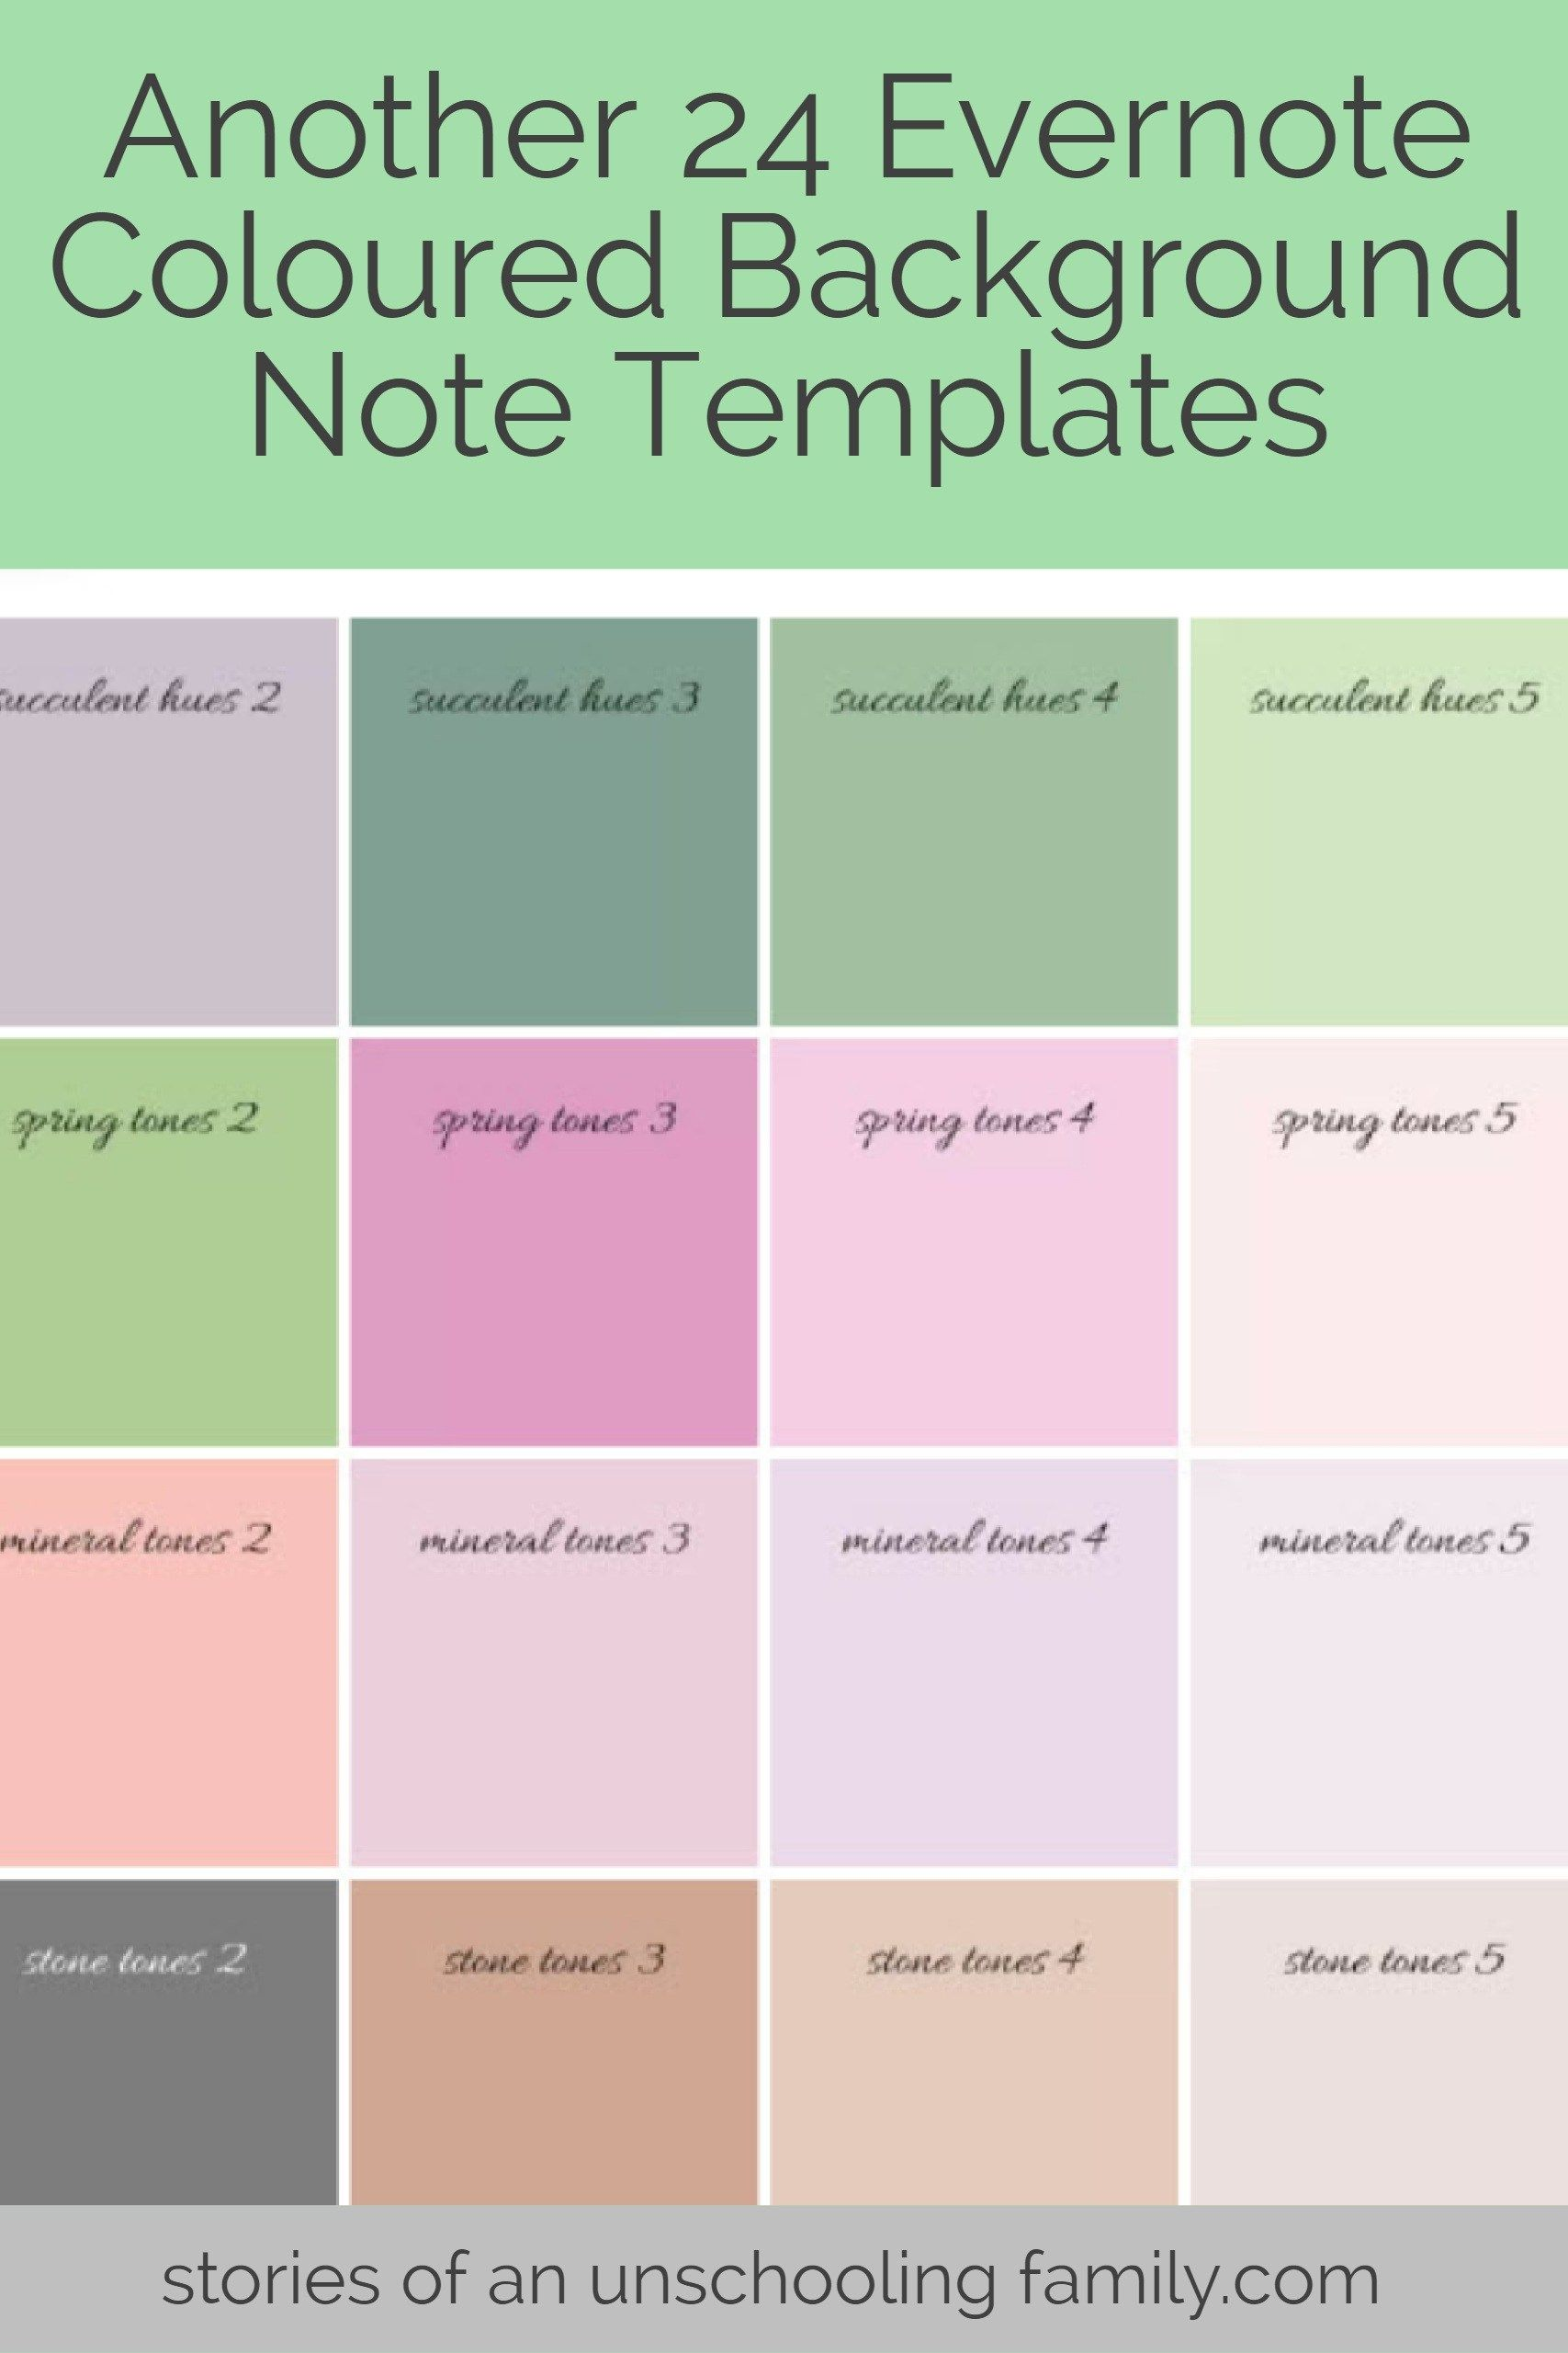 Another 24 Evernote Coloured Background Note Templates Evernote